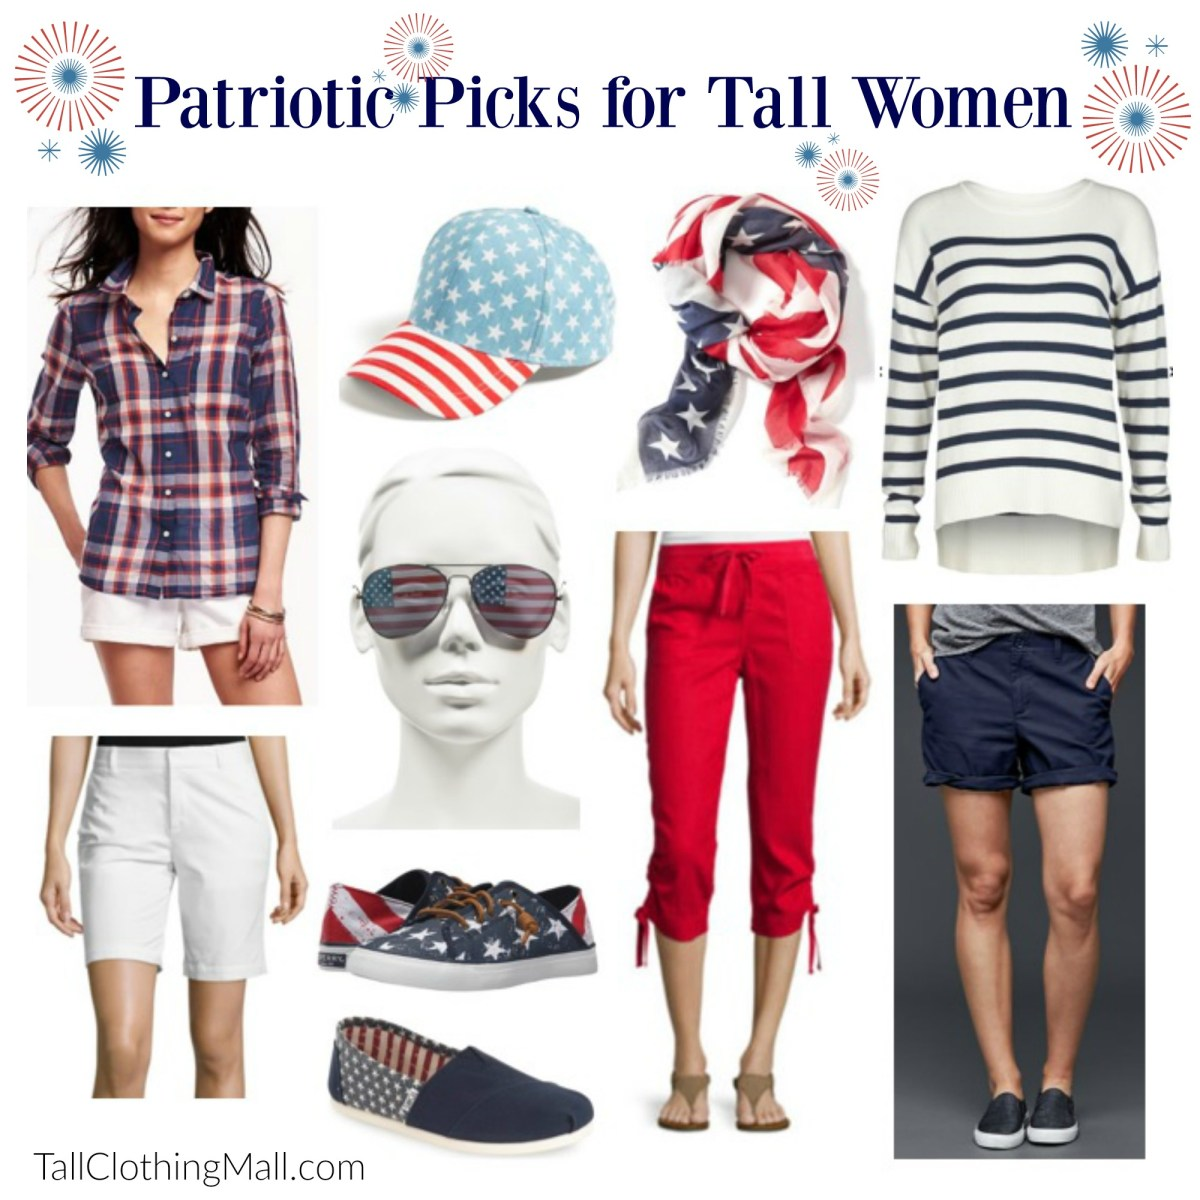 Patriotic Picks for Tall Women